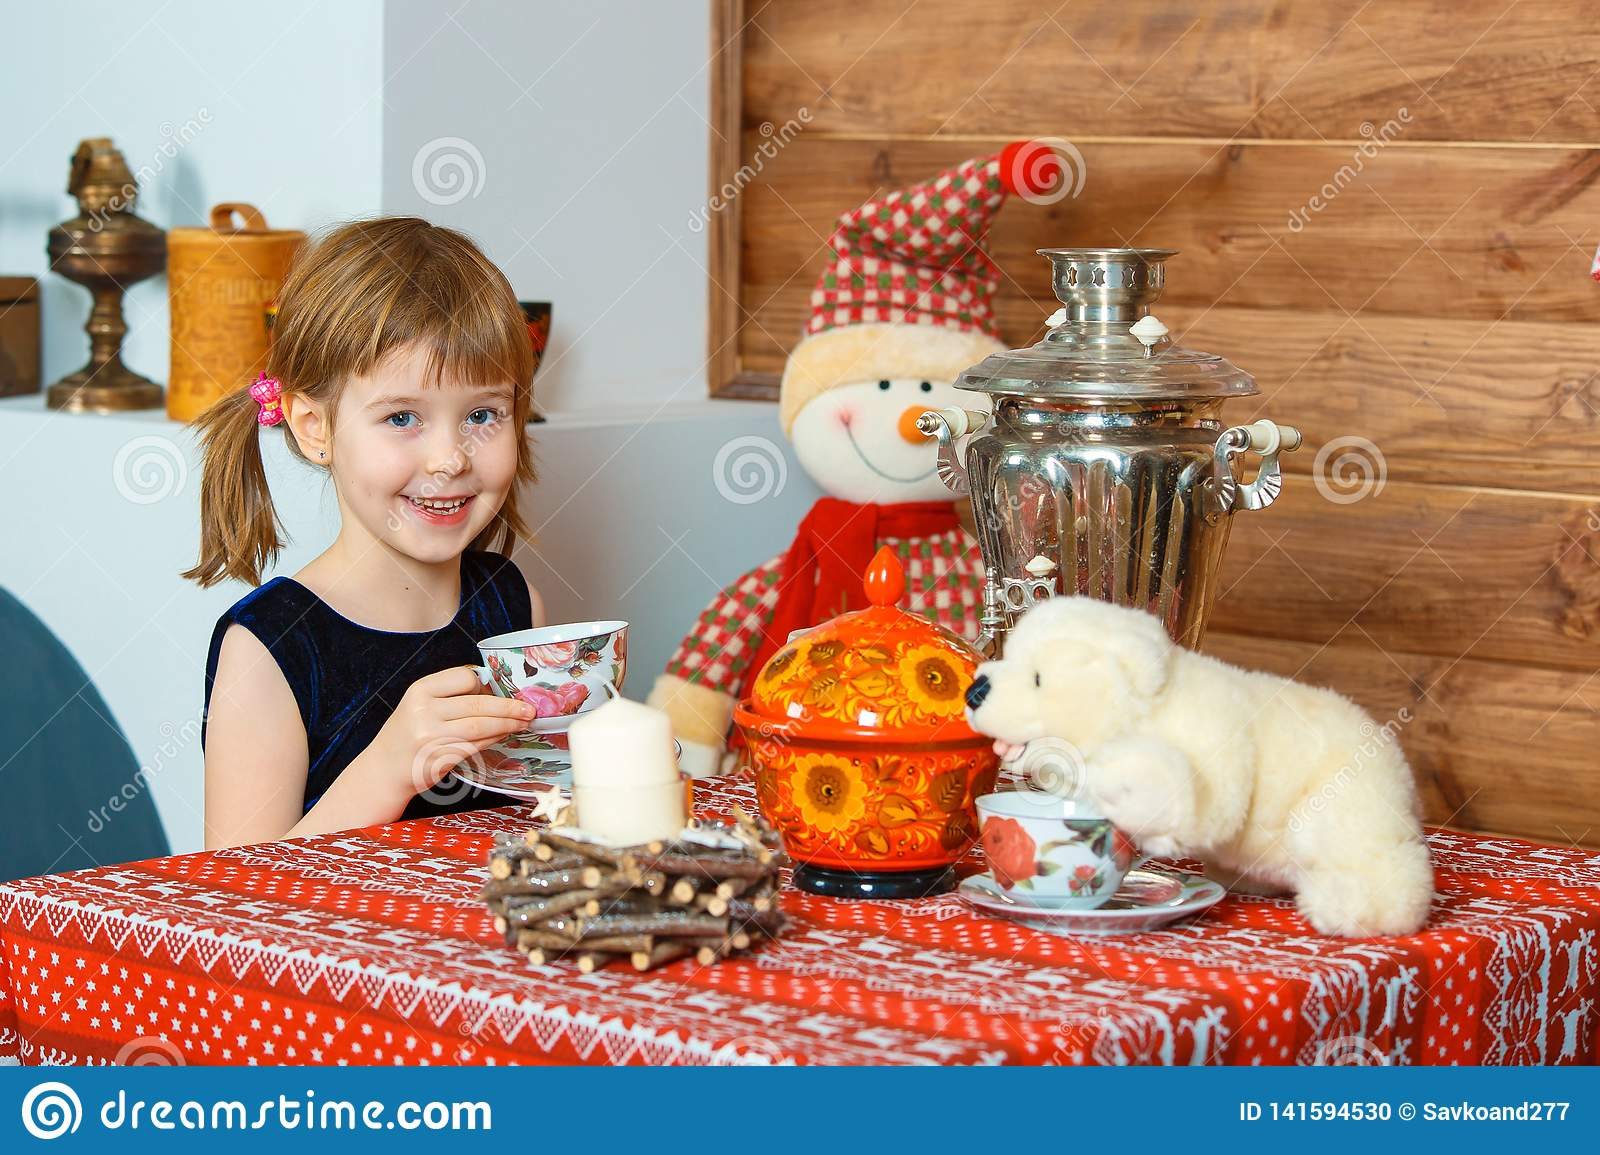 The girl is drinking tea and smiling